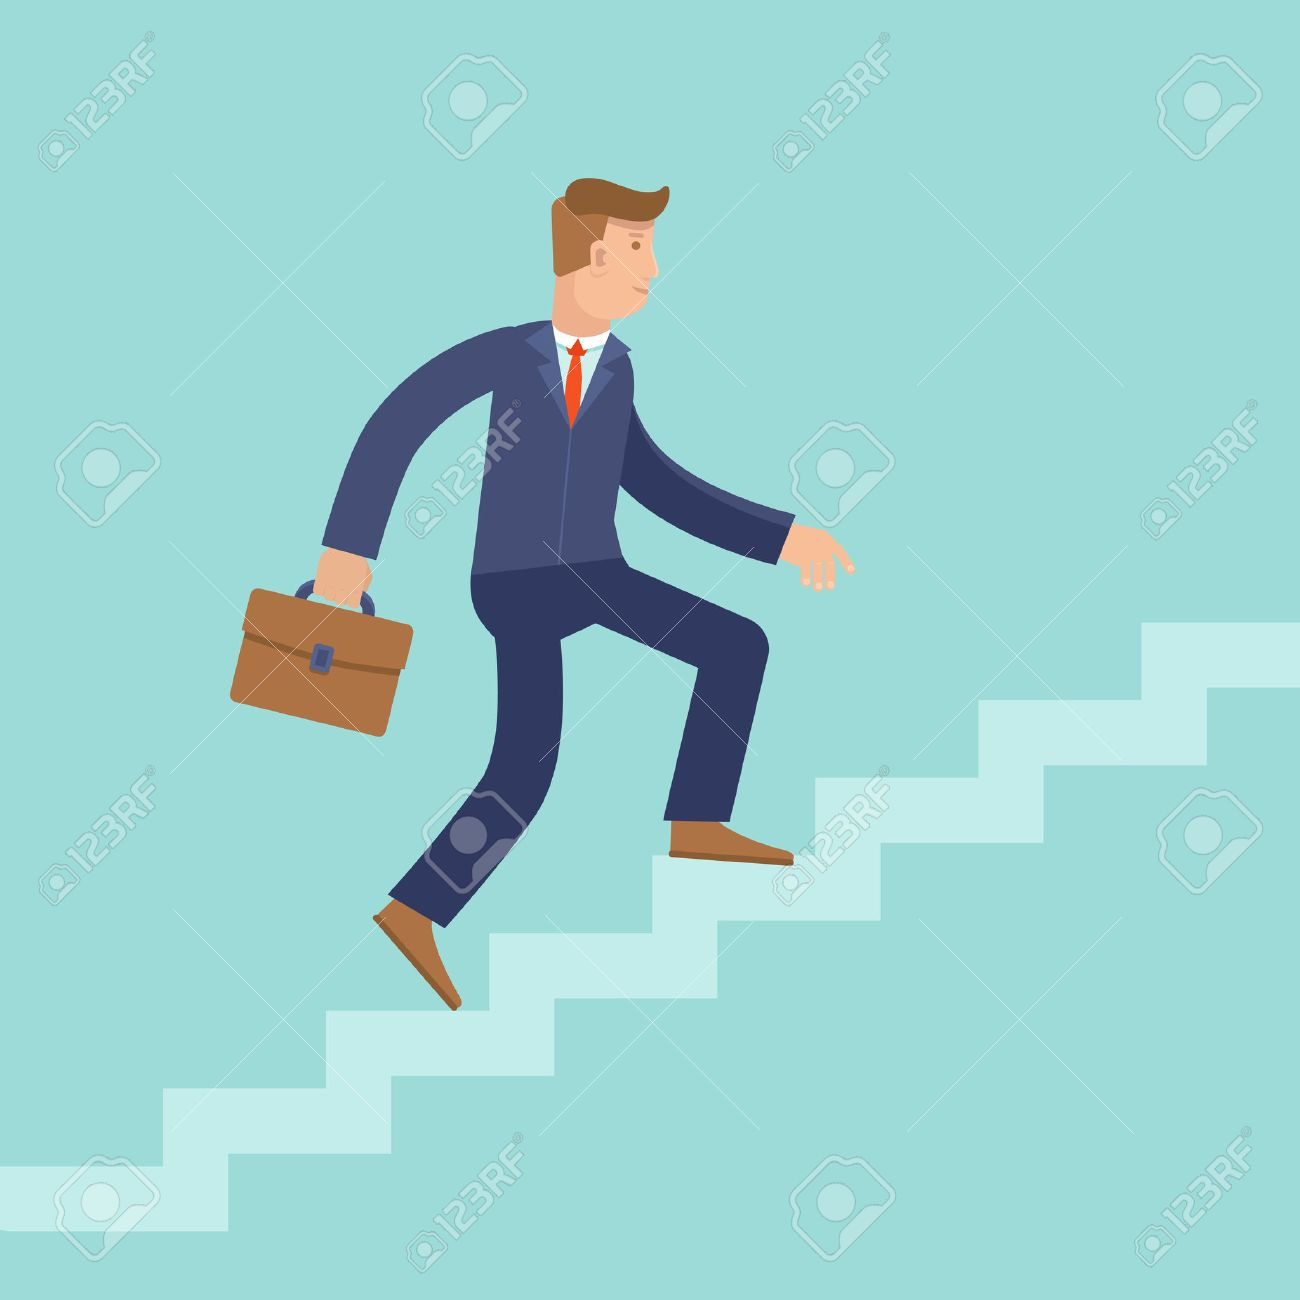 Vector Career Concept In Flat Style - Cartoon Man Climbing The ... for Climbing Stairs To Success  67qdu